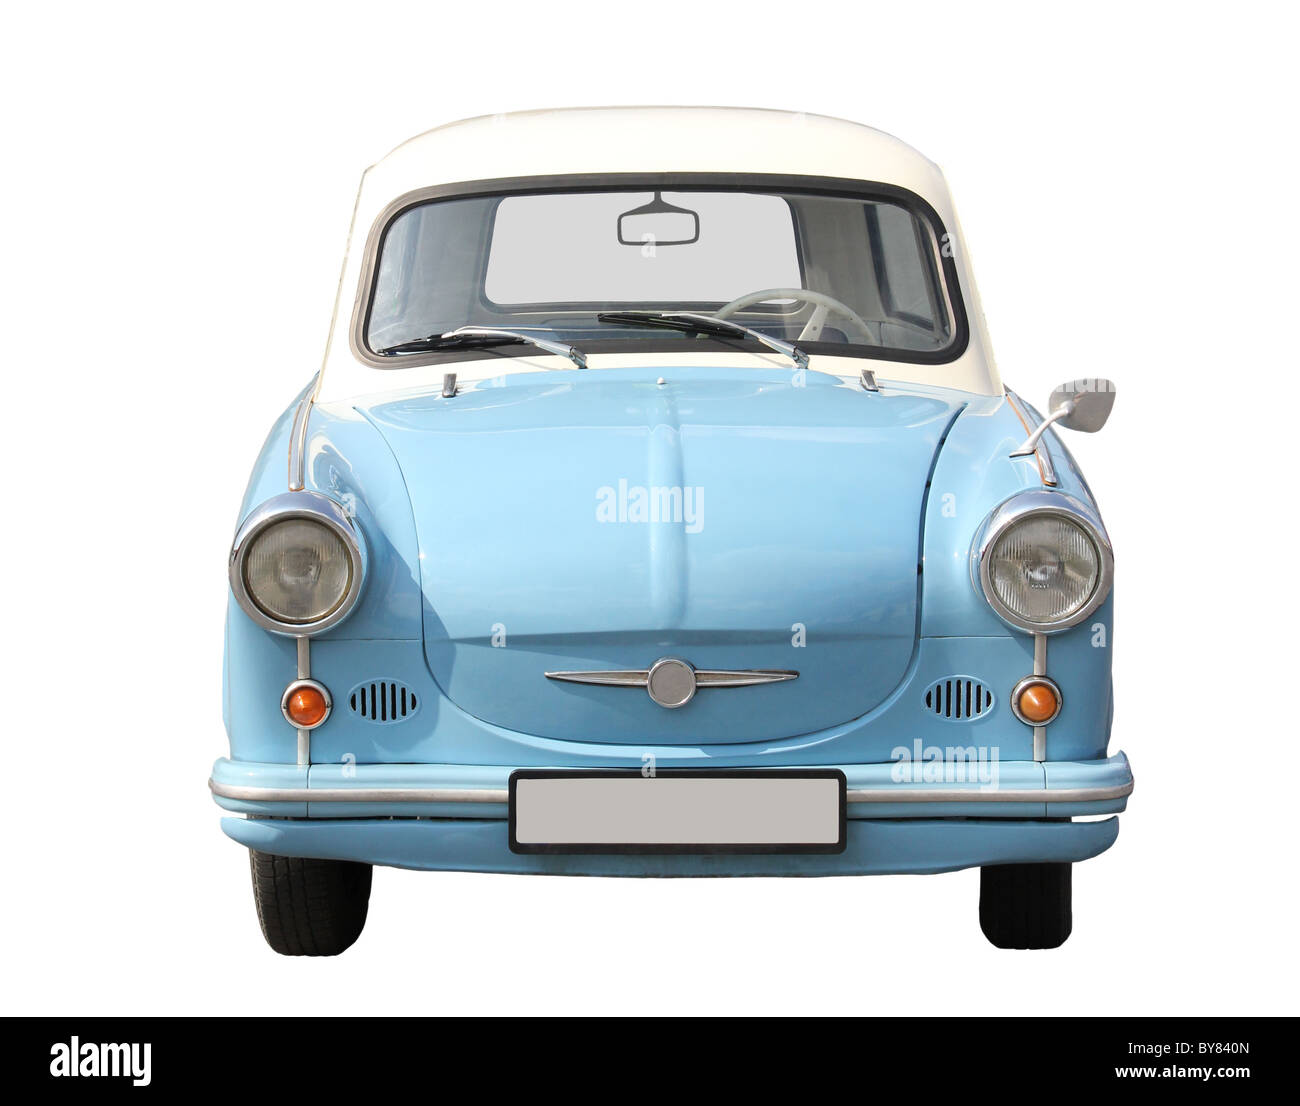 European type car from the seventies. - Stock Image